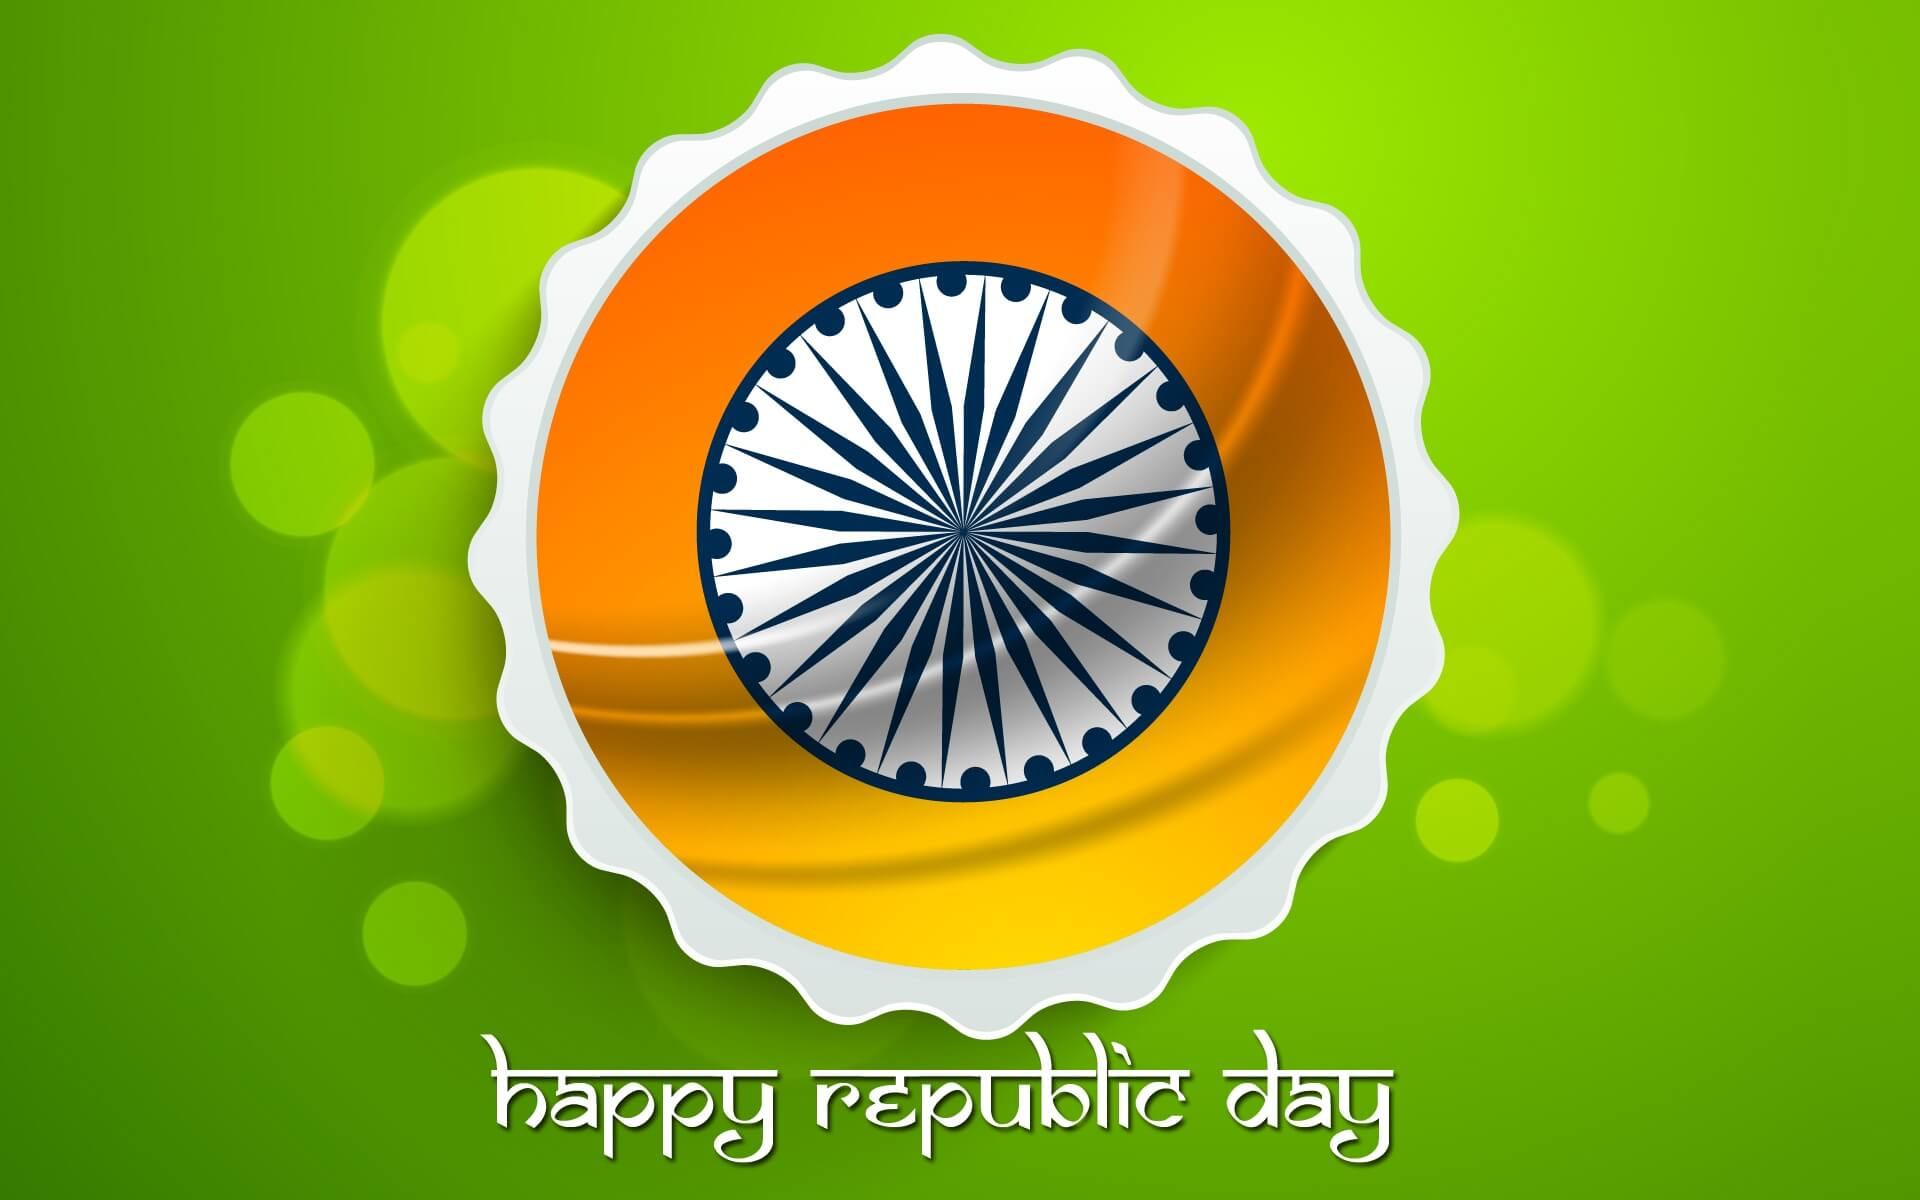 Images 26 January Republic Day